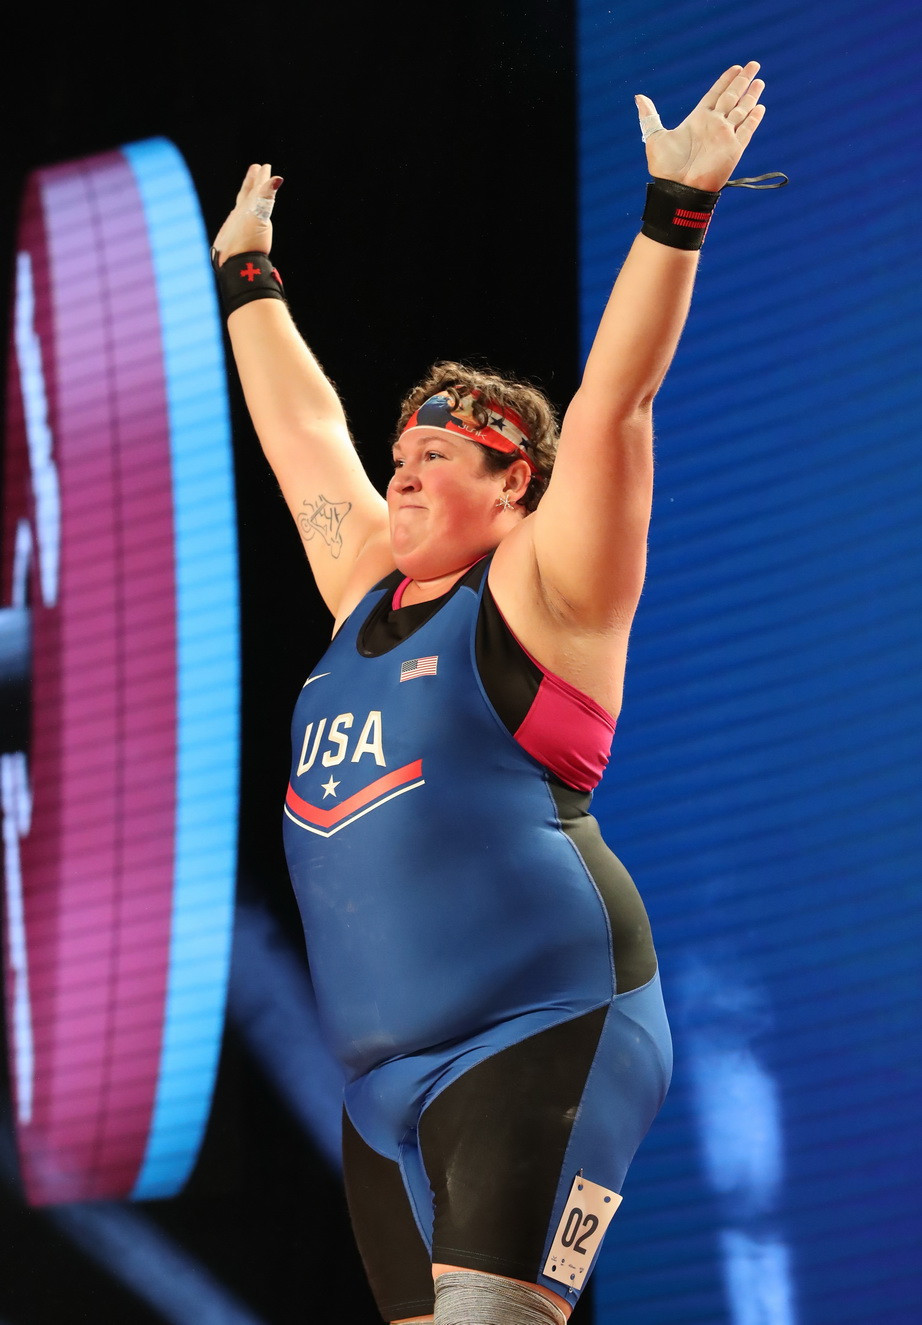 Robles makes American history on record-breaking final day of 2017 IWF World Championships